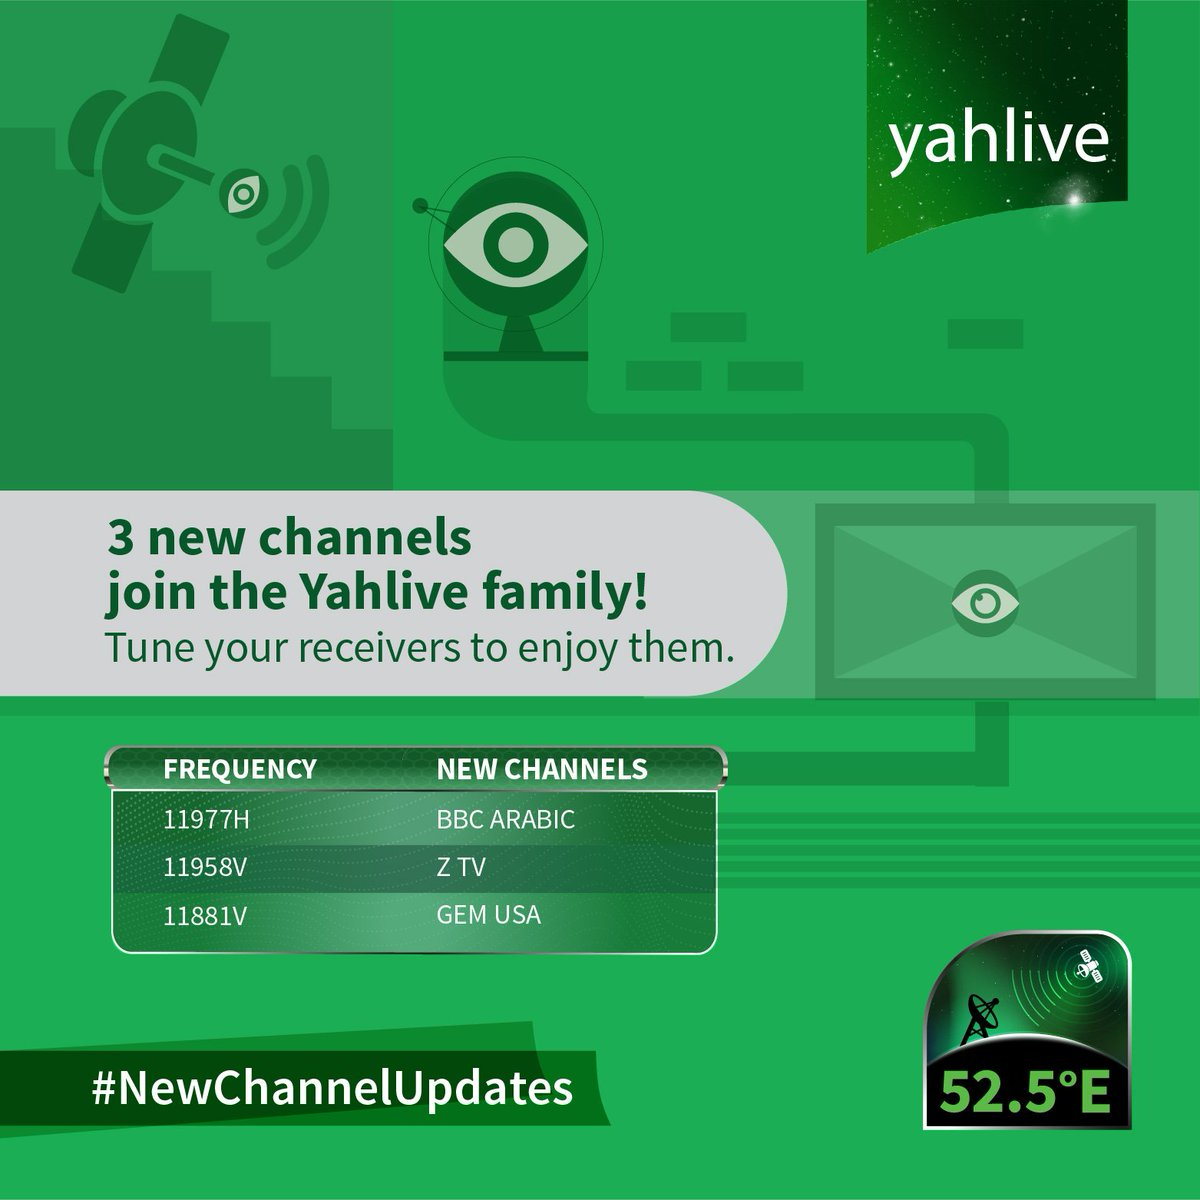 Yahlive (@Yahlive) | Twitter